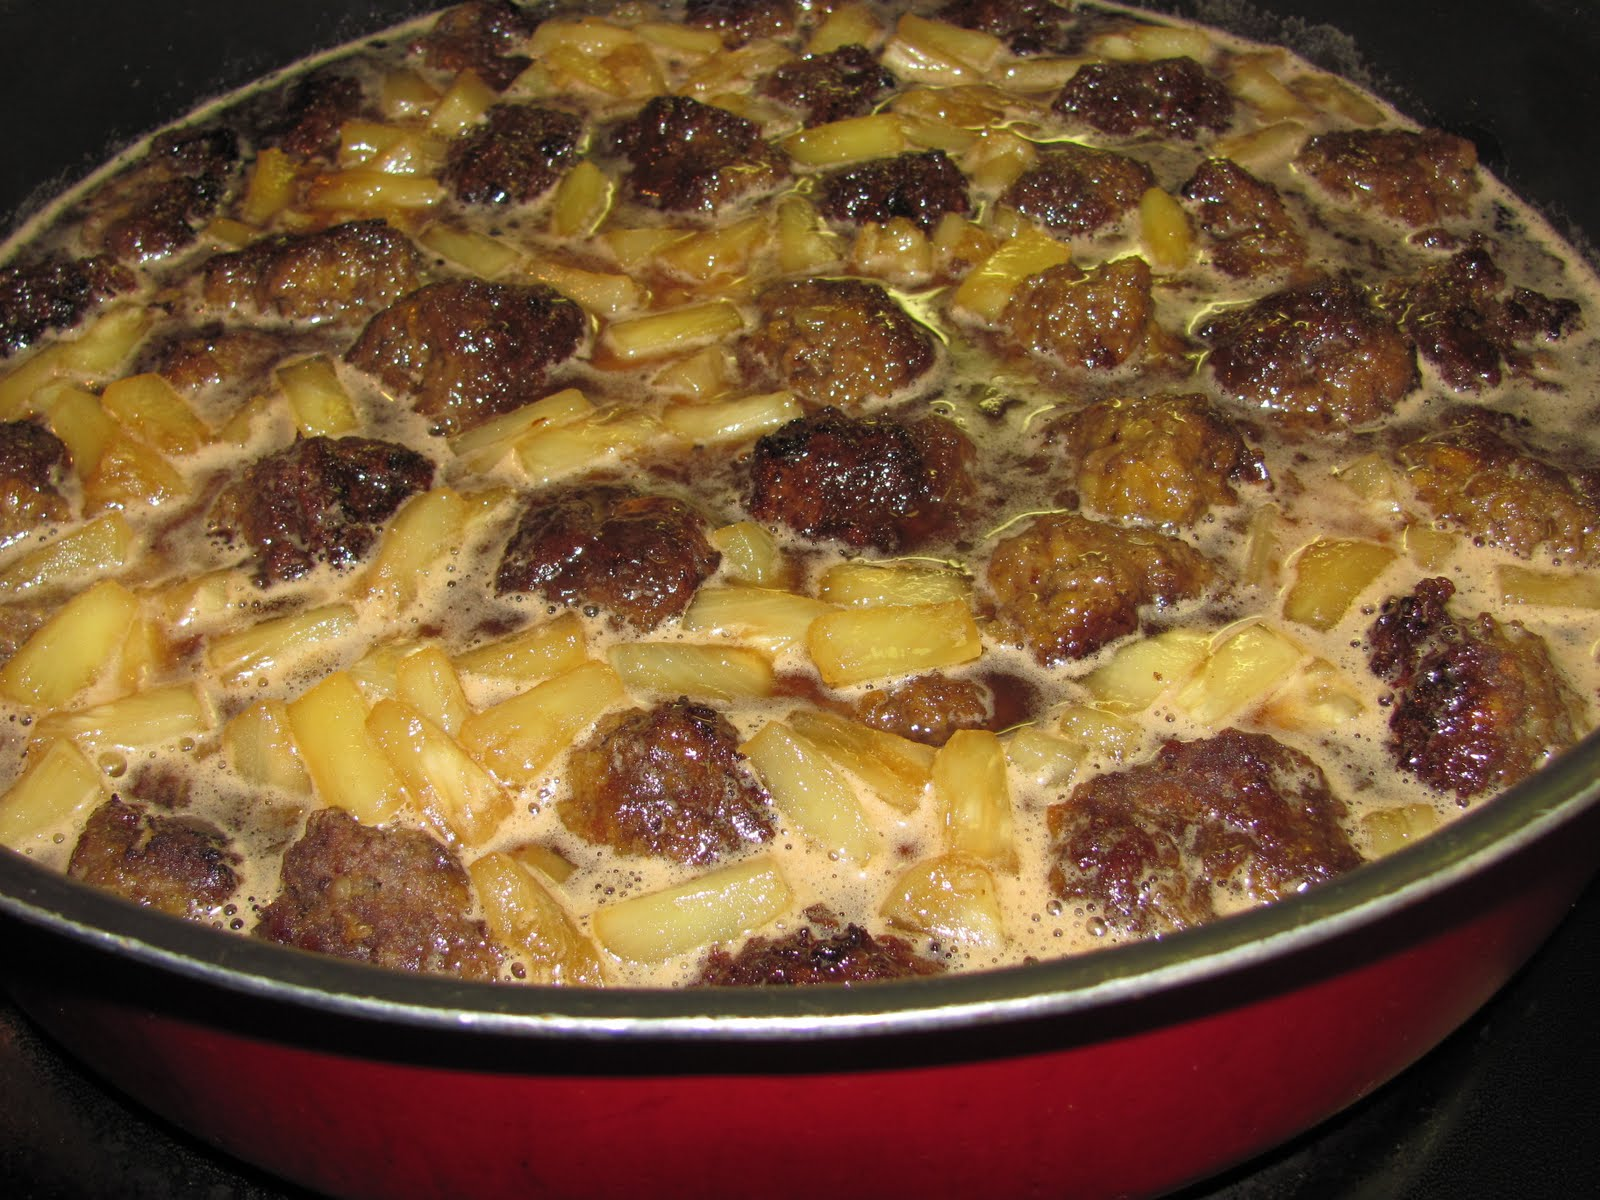 Top 28 things u can make with hamburger how to make for What can i make with hamburger for dinner